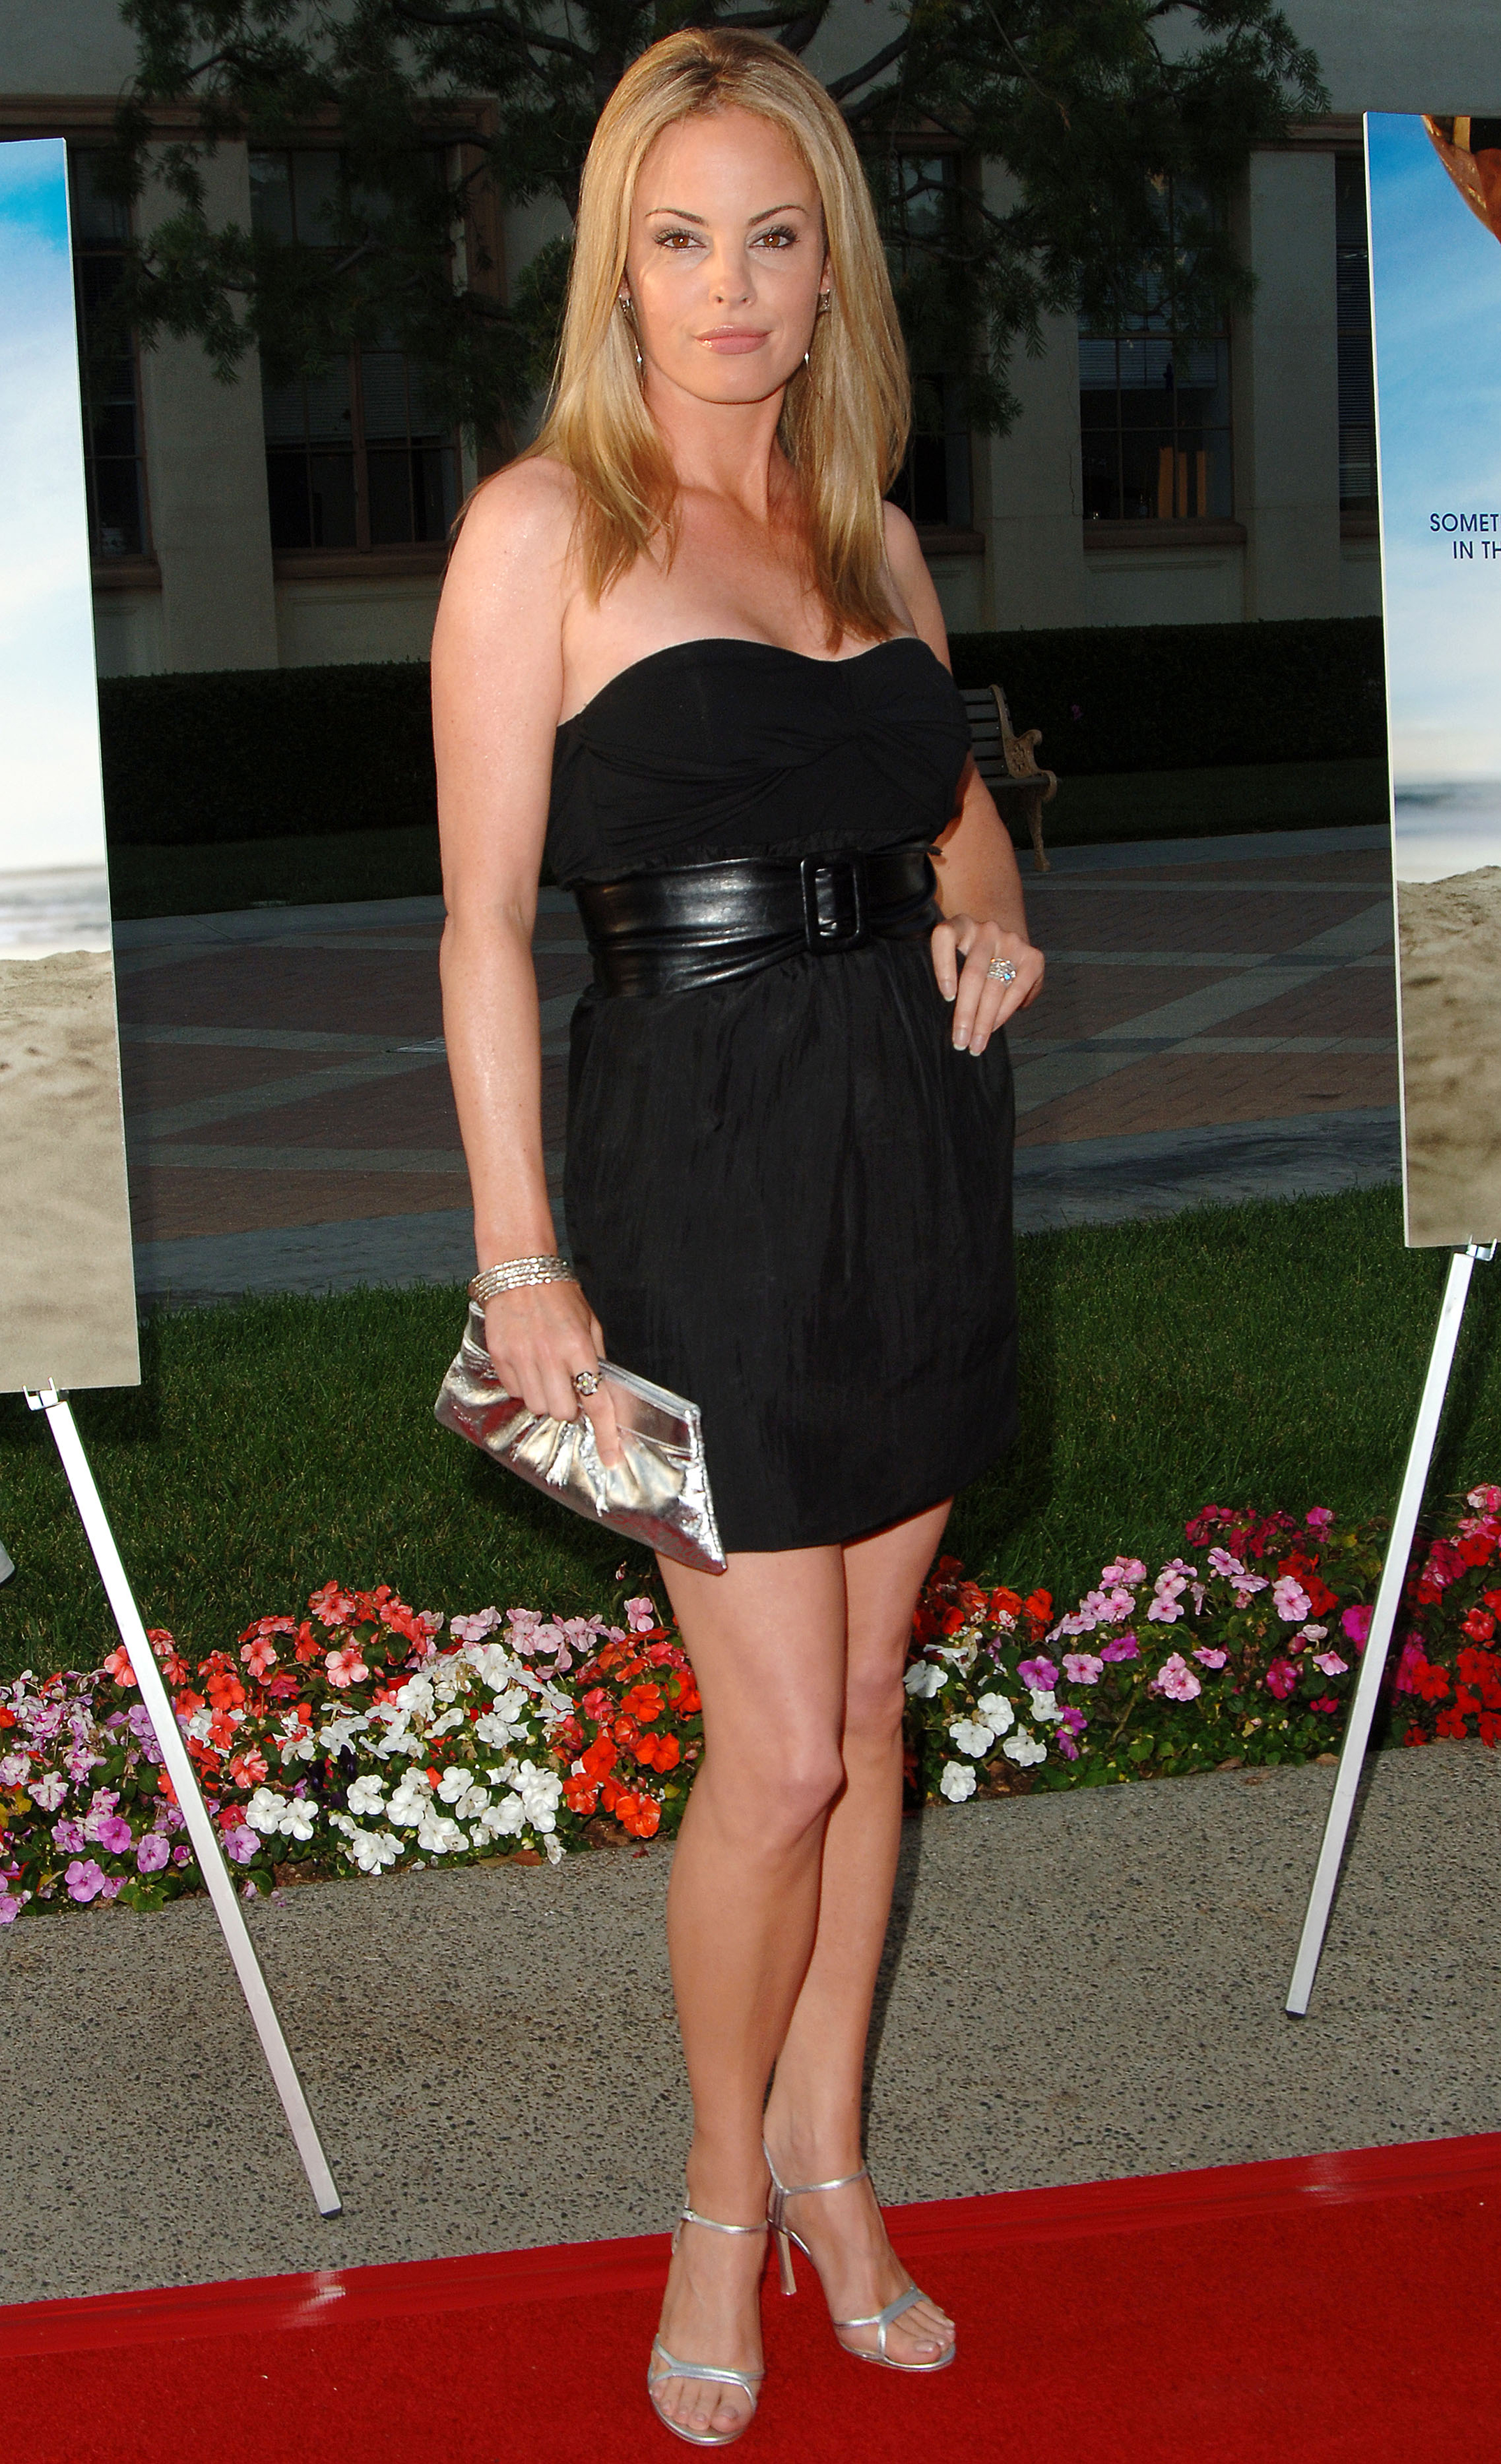 chandra west plastic surgery